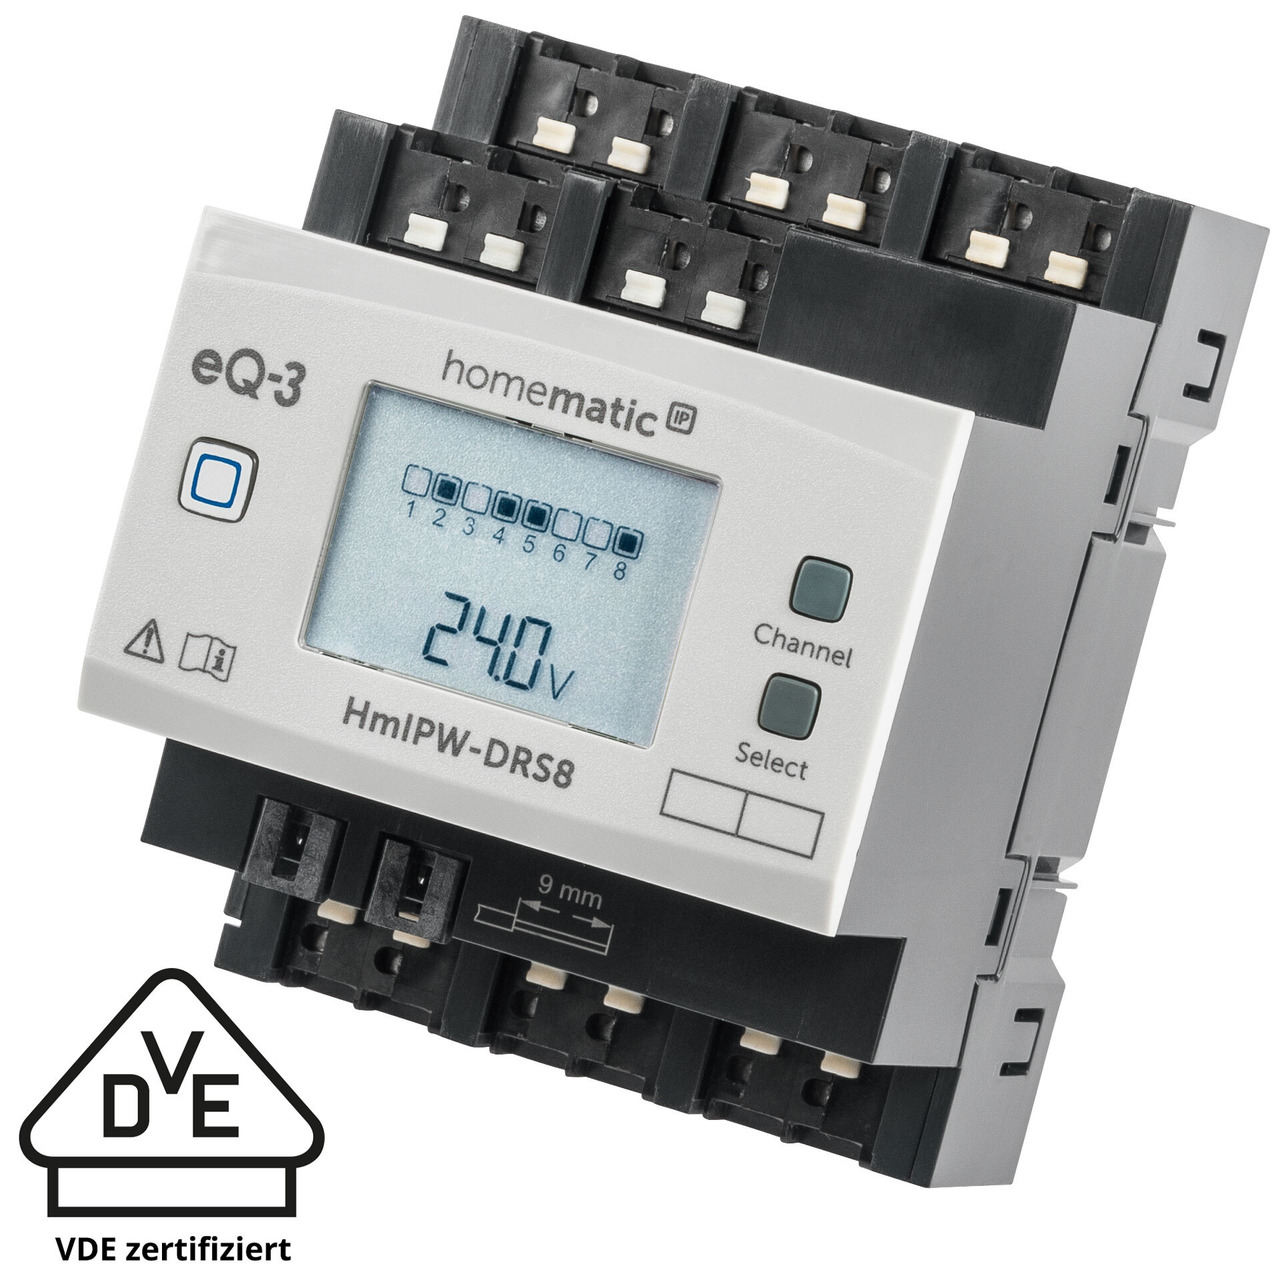 Homematic IP Wired Smart Home 8-fach-Schaltaktor HmIPW-DRS8- VDE zertifiziert